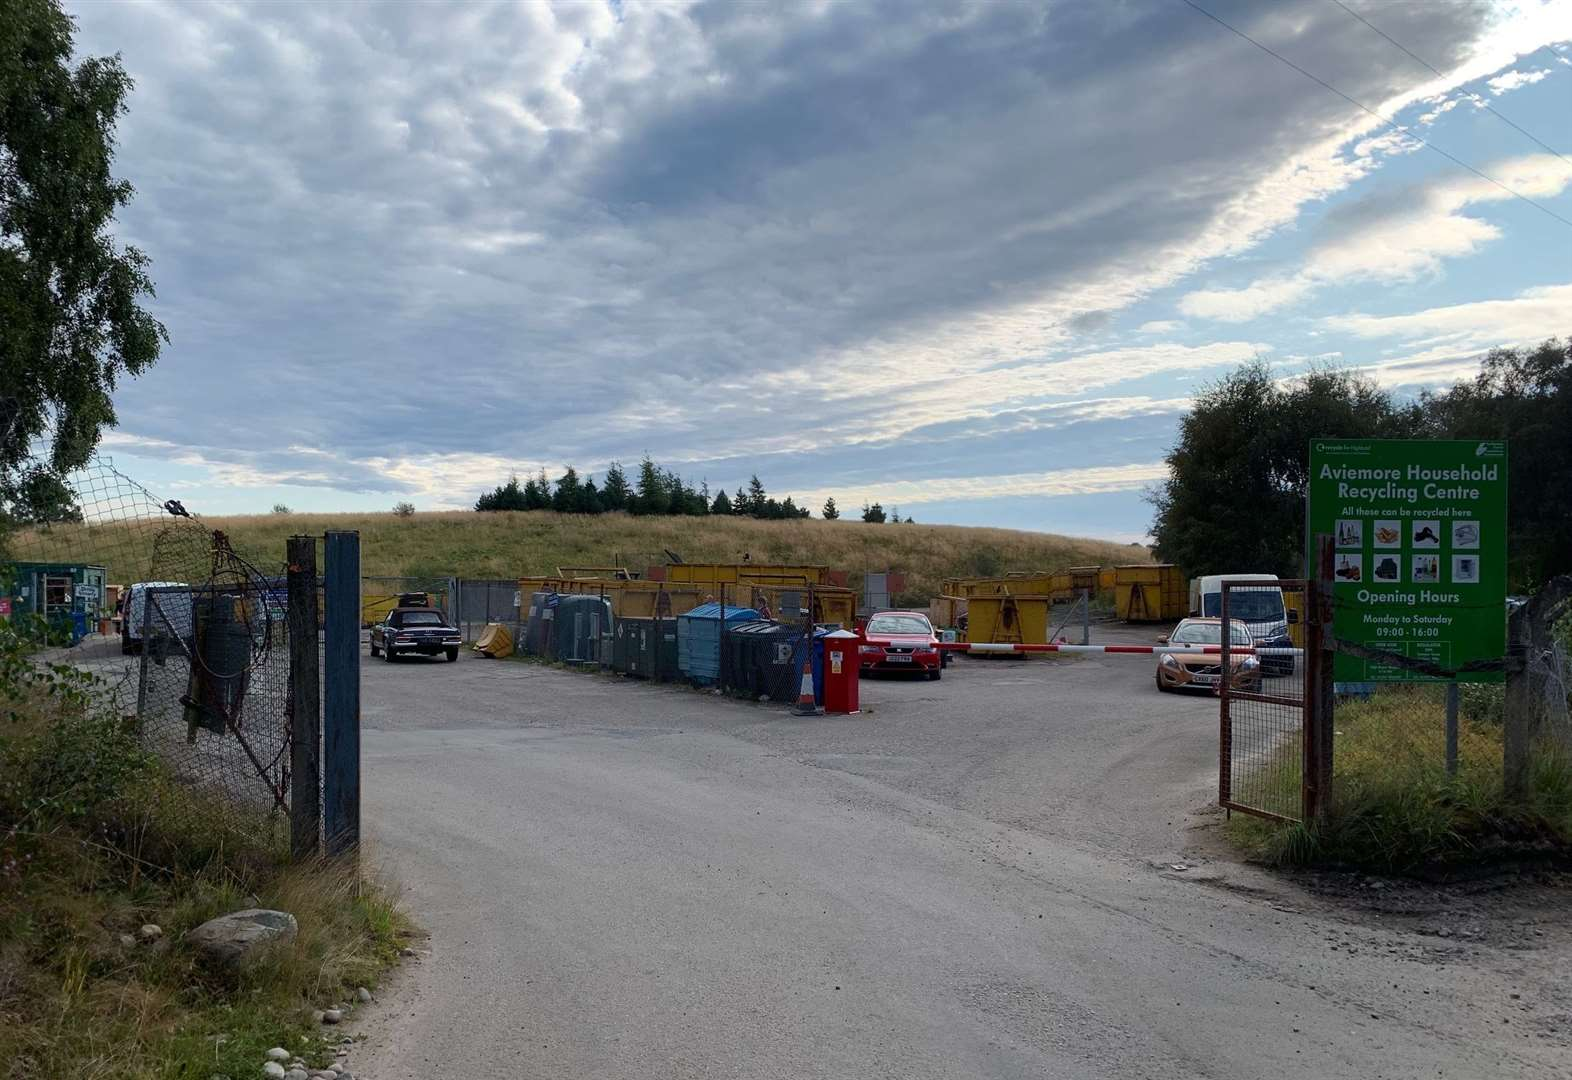 Bid to extend lifetime of Aviemore landfill site